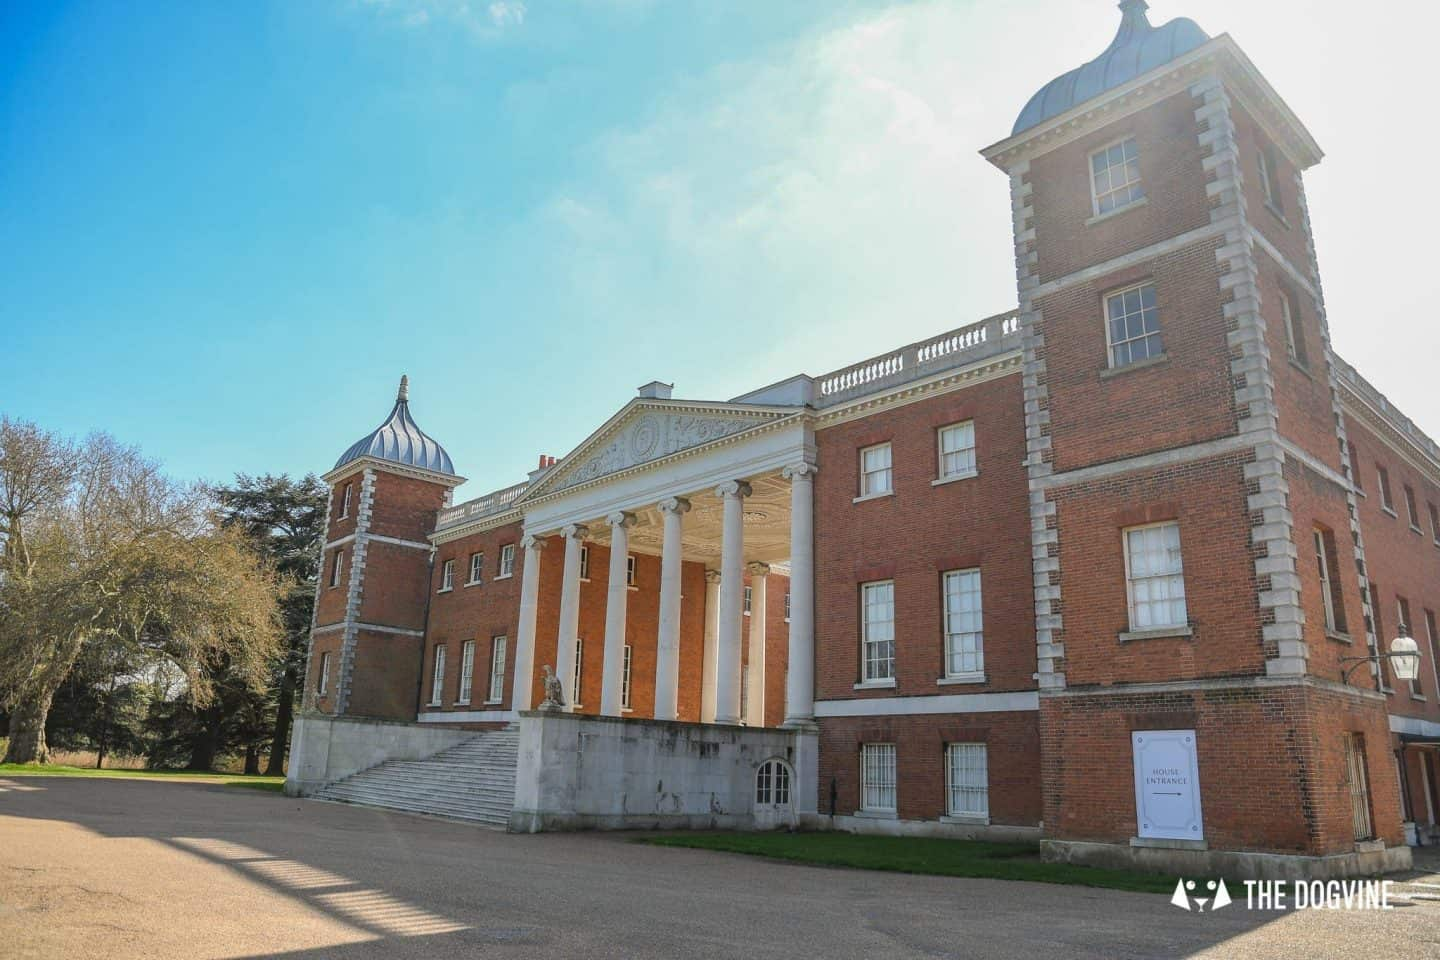 Dog-Friendly Osterley Park and House - Visiting With Your Dog 14